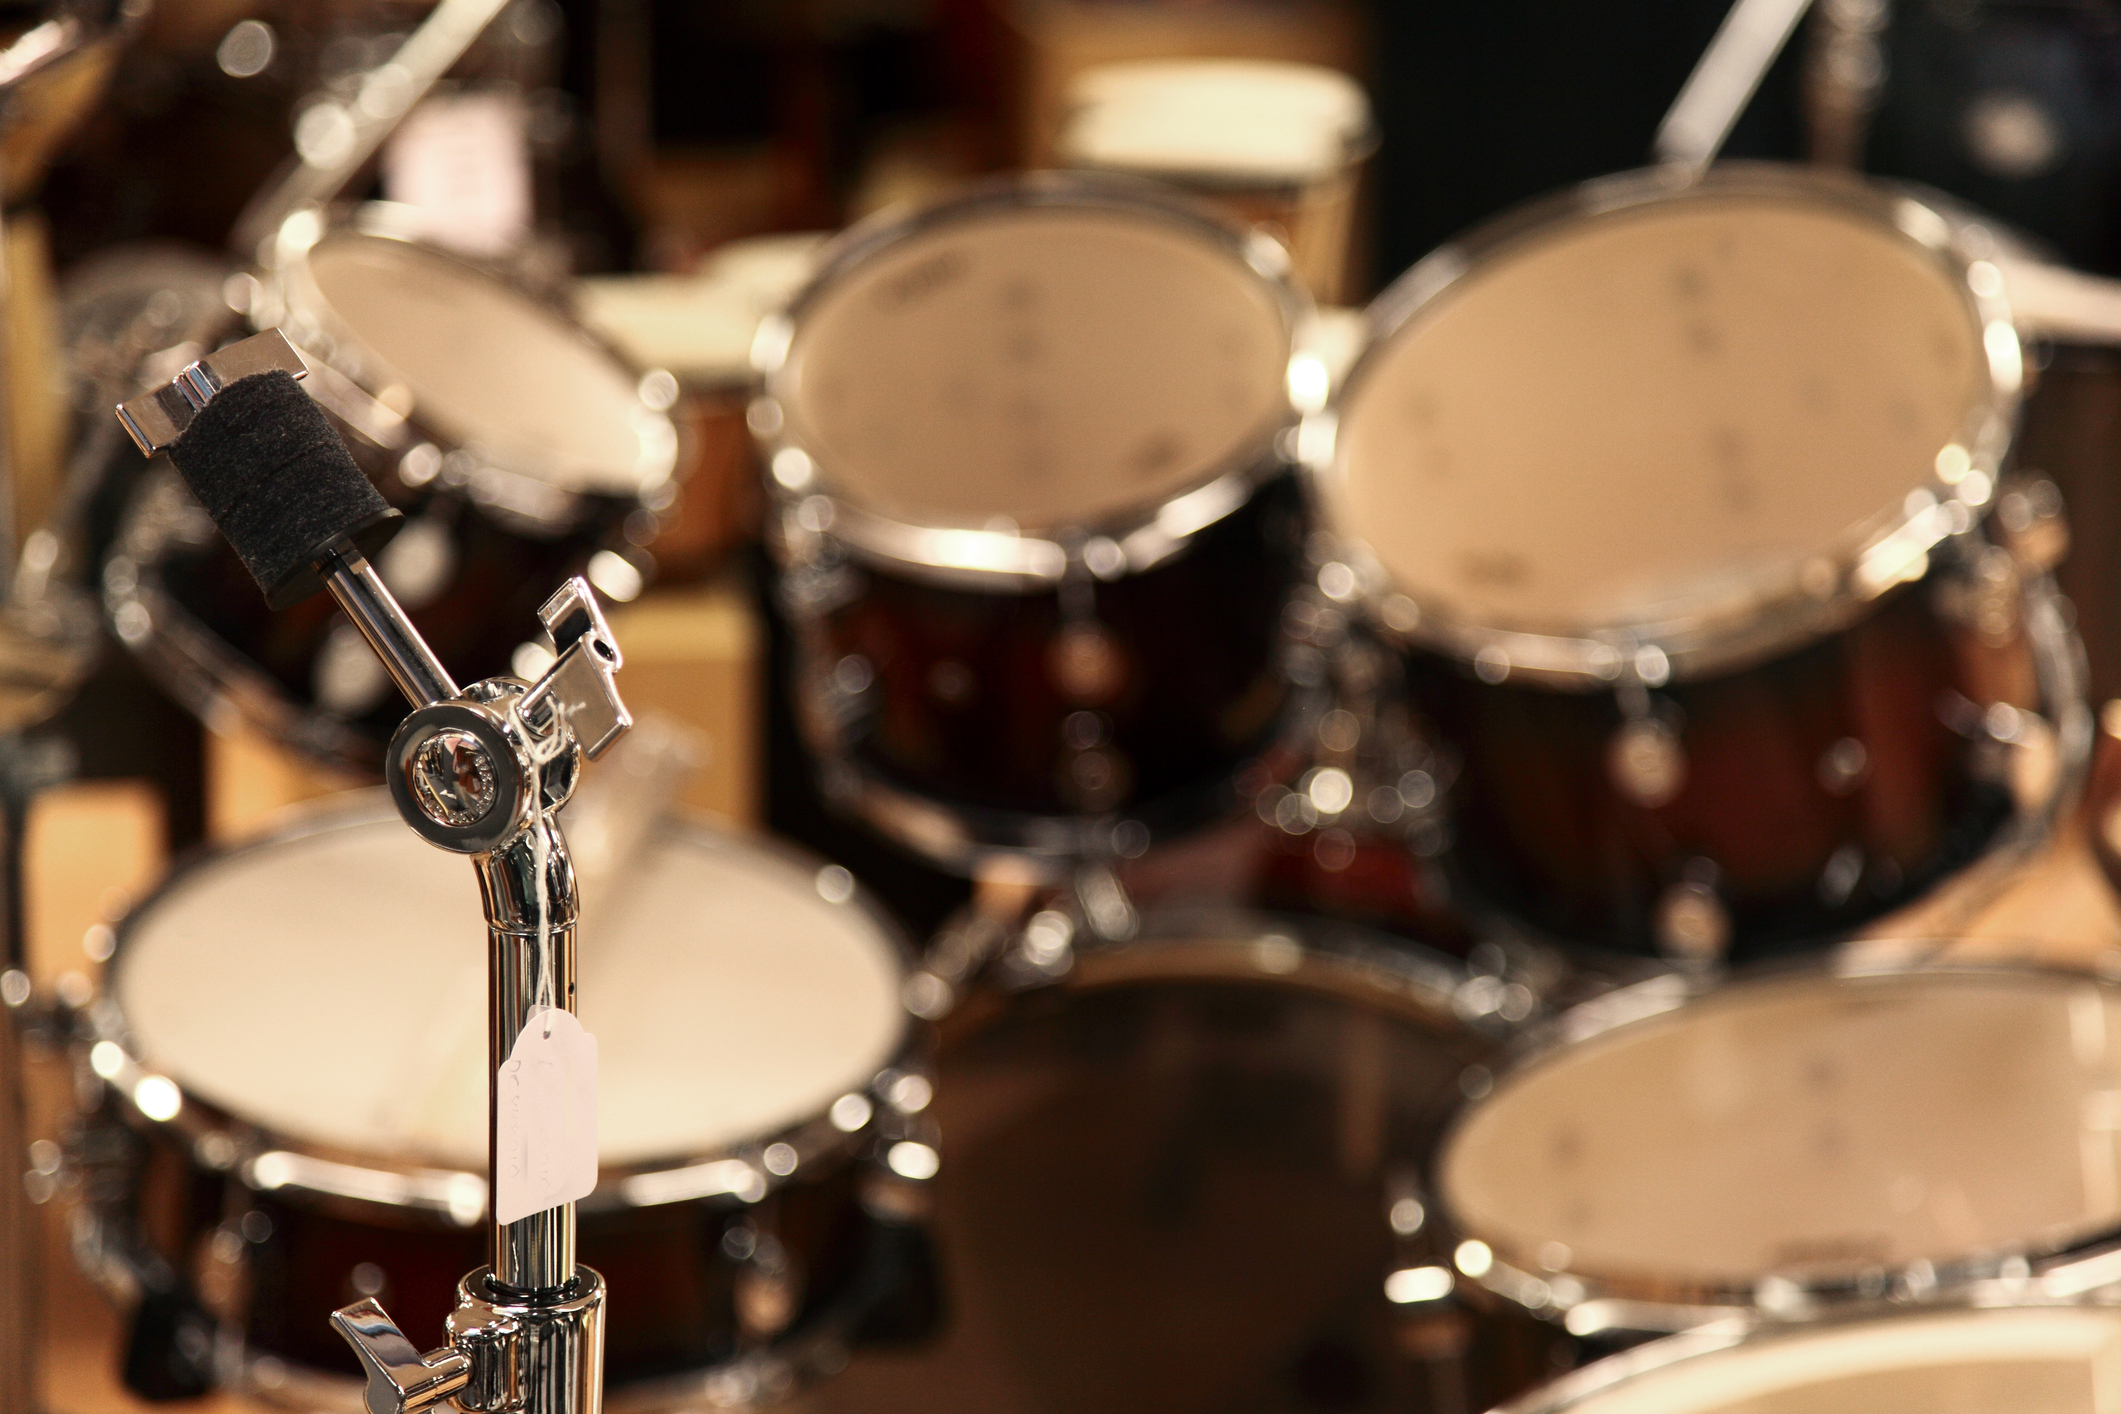 Drum Lessons in Westlake Village